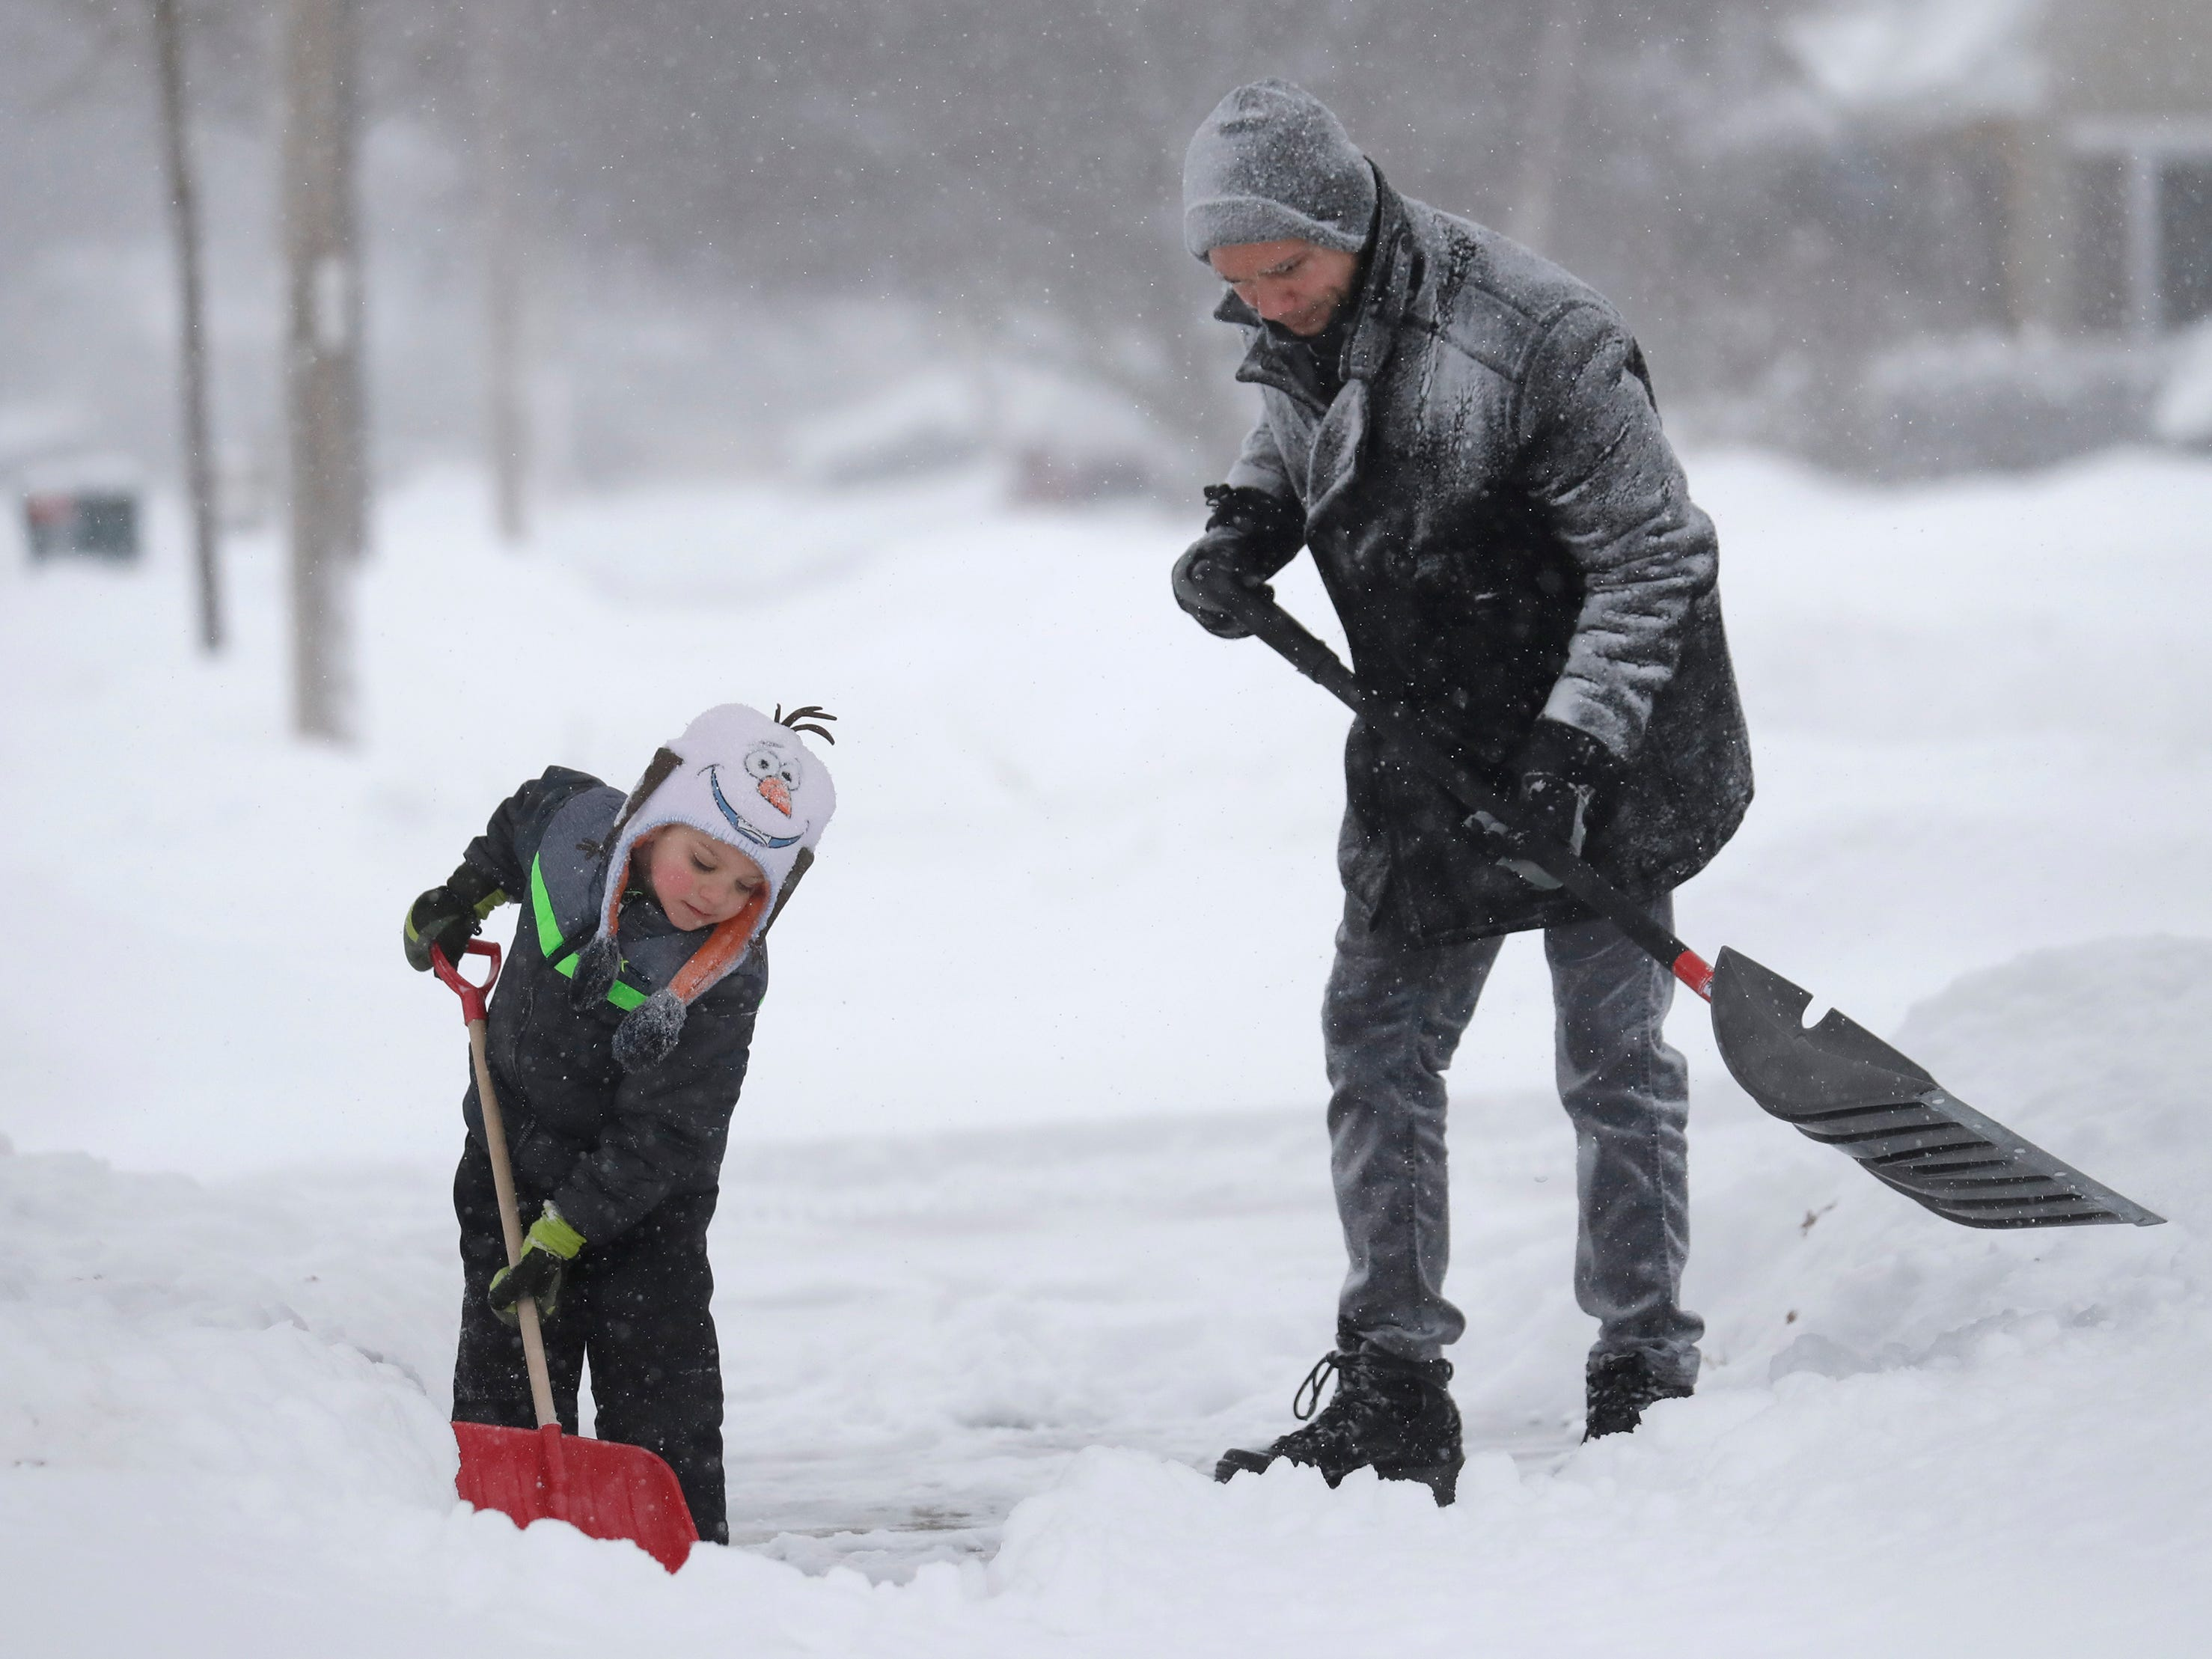 David Liebhard gets a little help from his son Levi, 4, as the two shovel their driveway during a snowstorm in Appleton, Wis., Jan. 28, 2019.